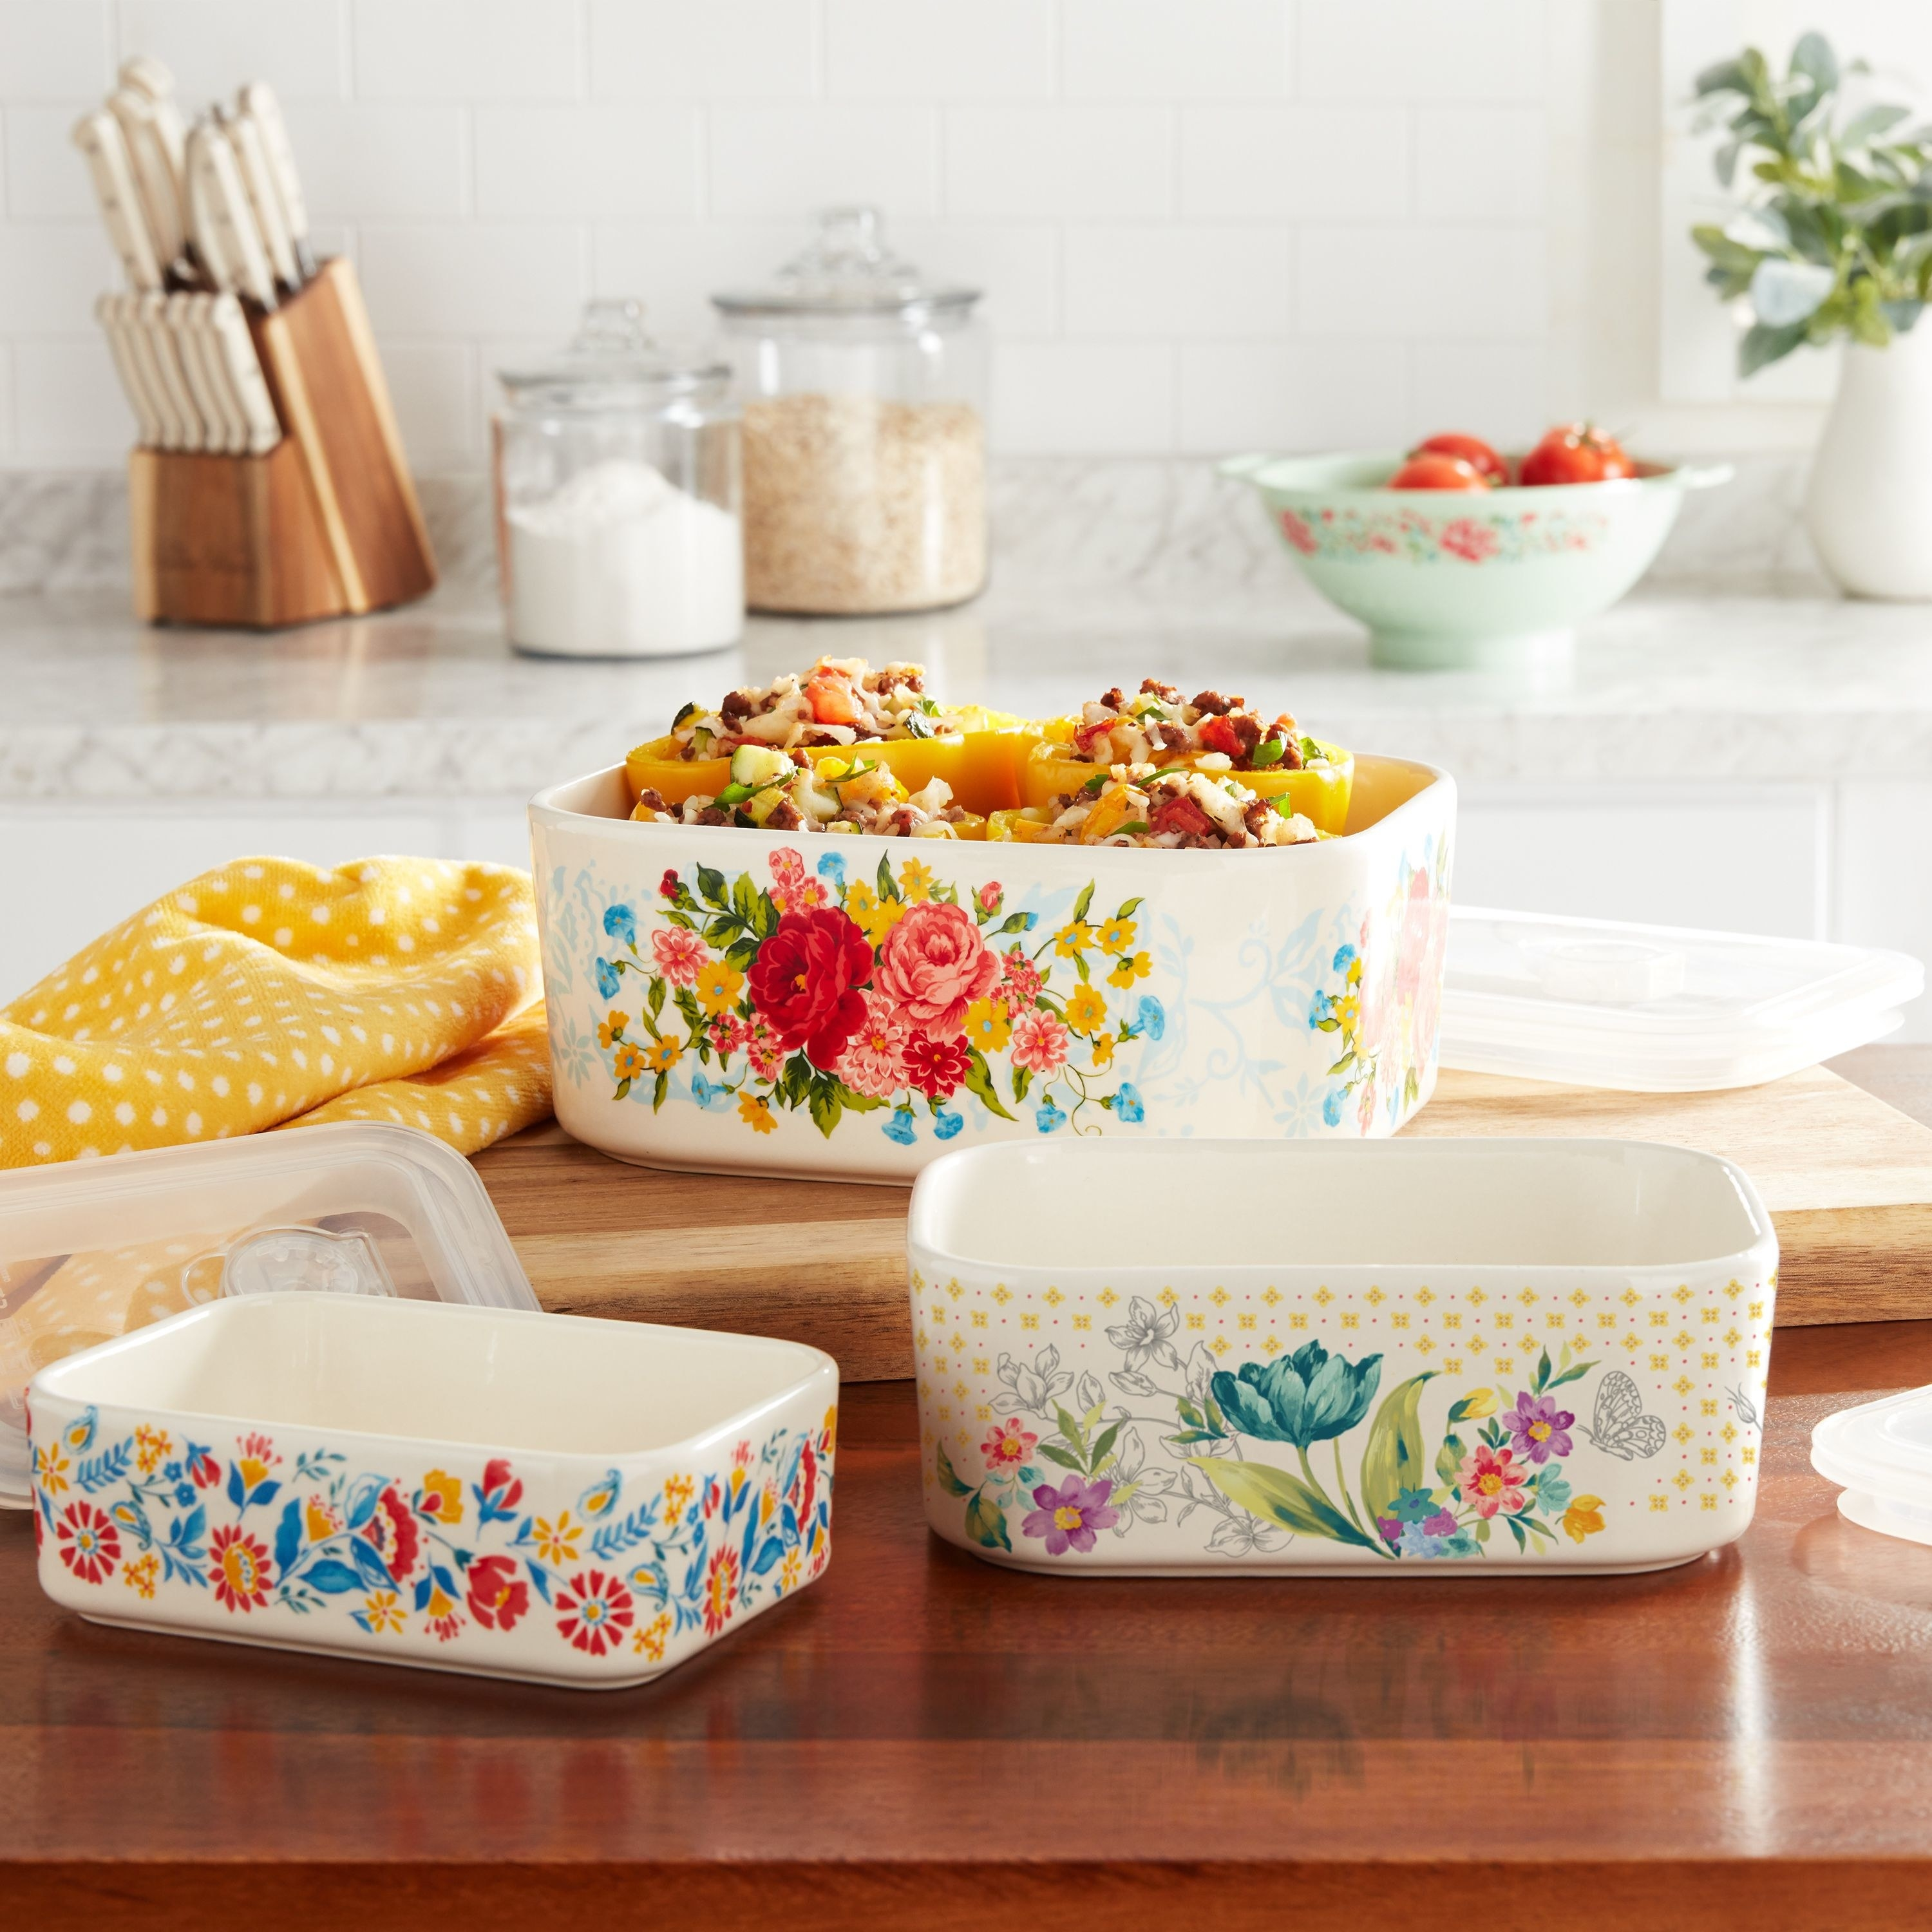 The floral bowls in a kitchen